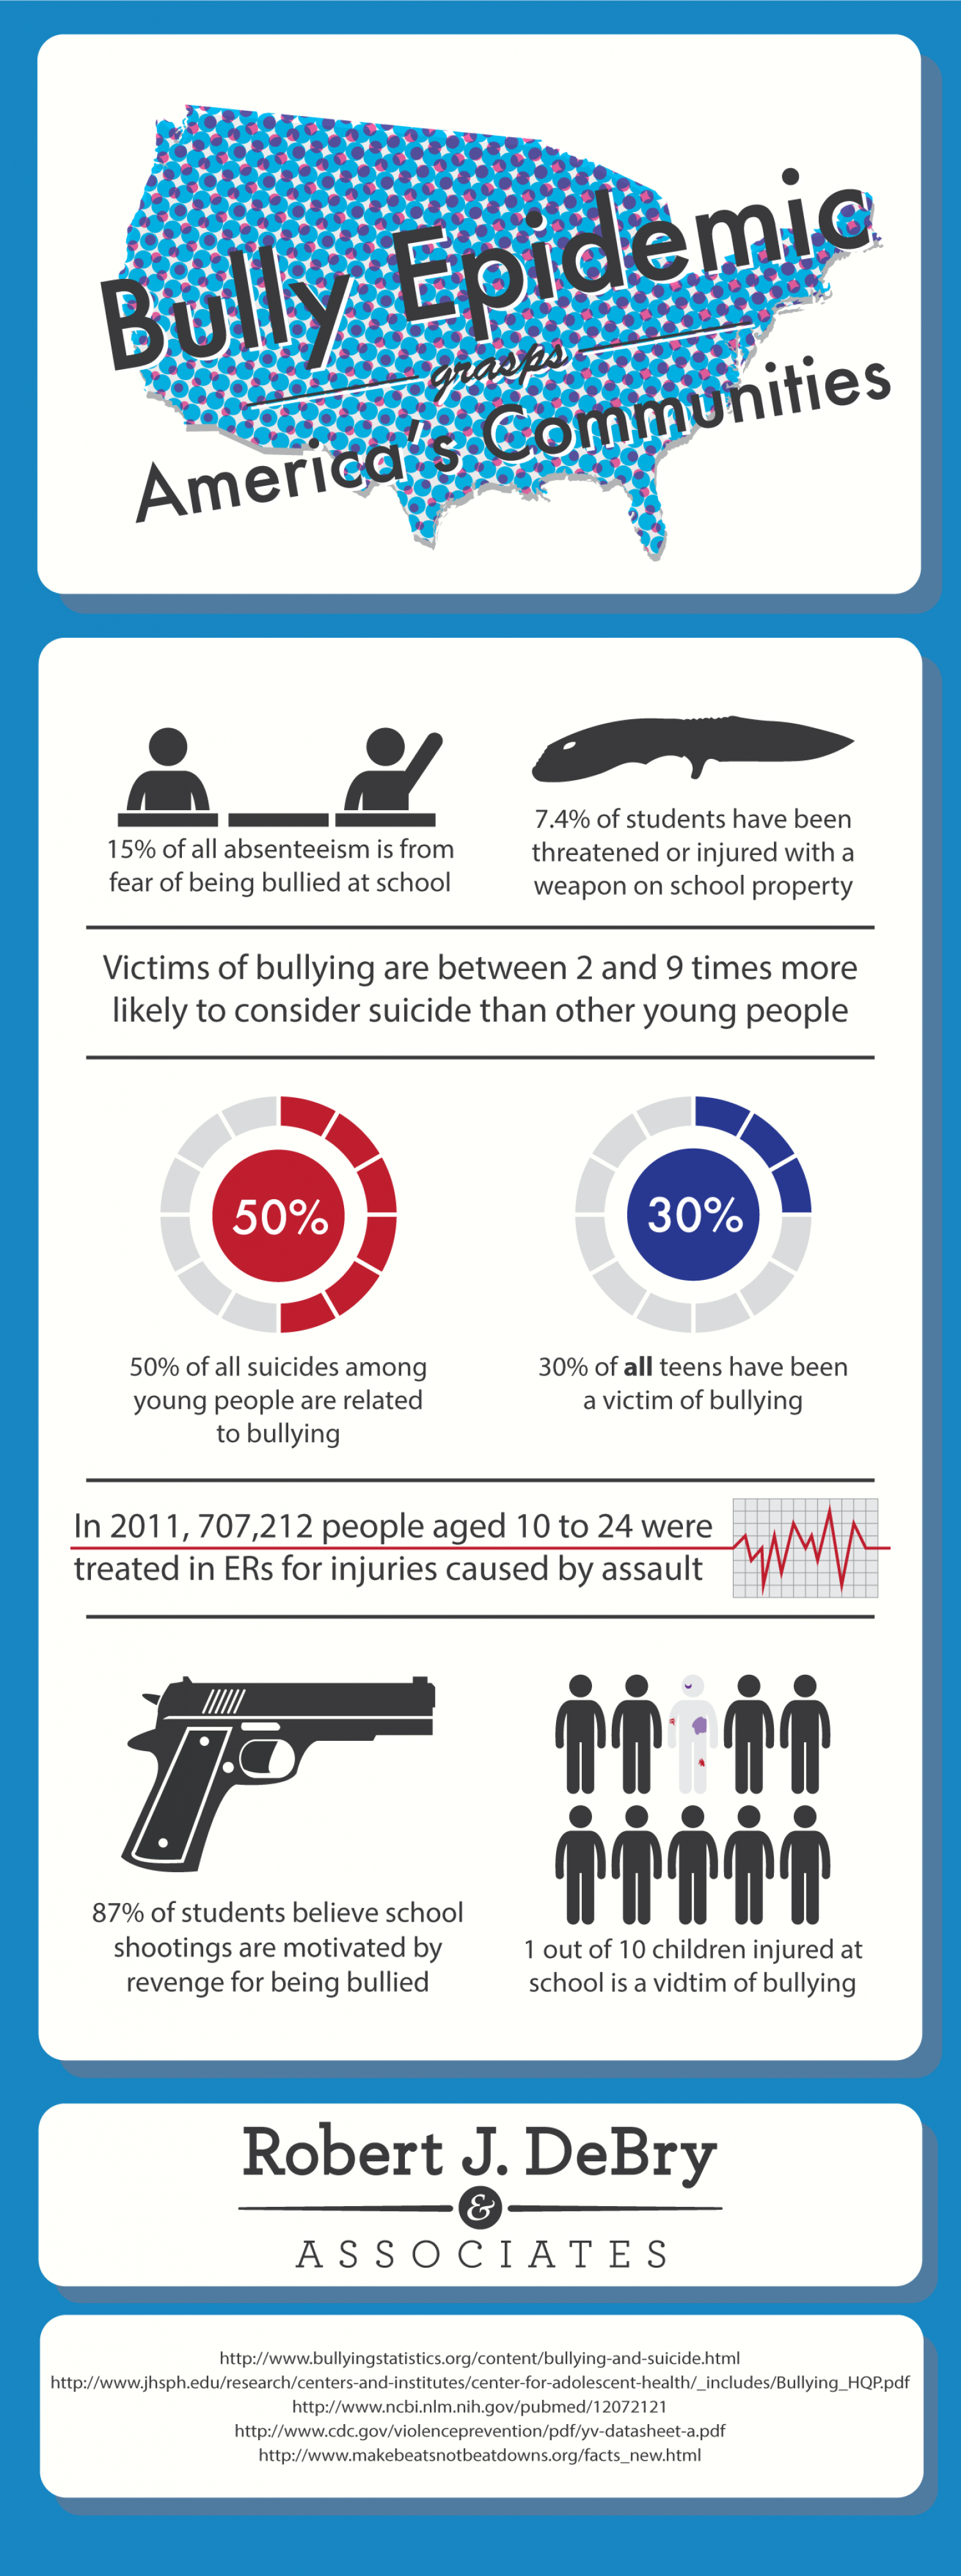 Bully Epidemic Grasps America's Communities Infographic